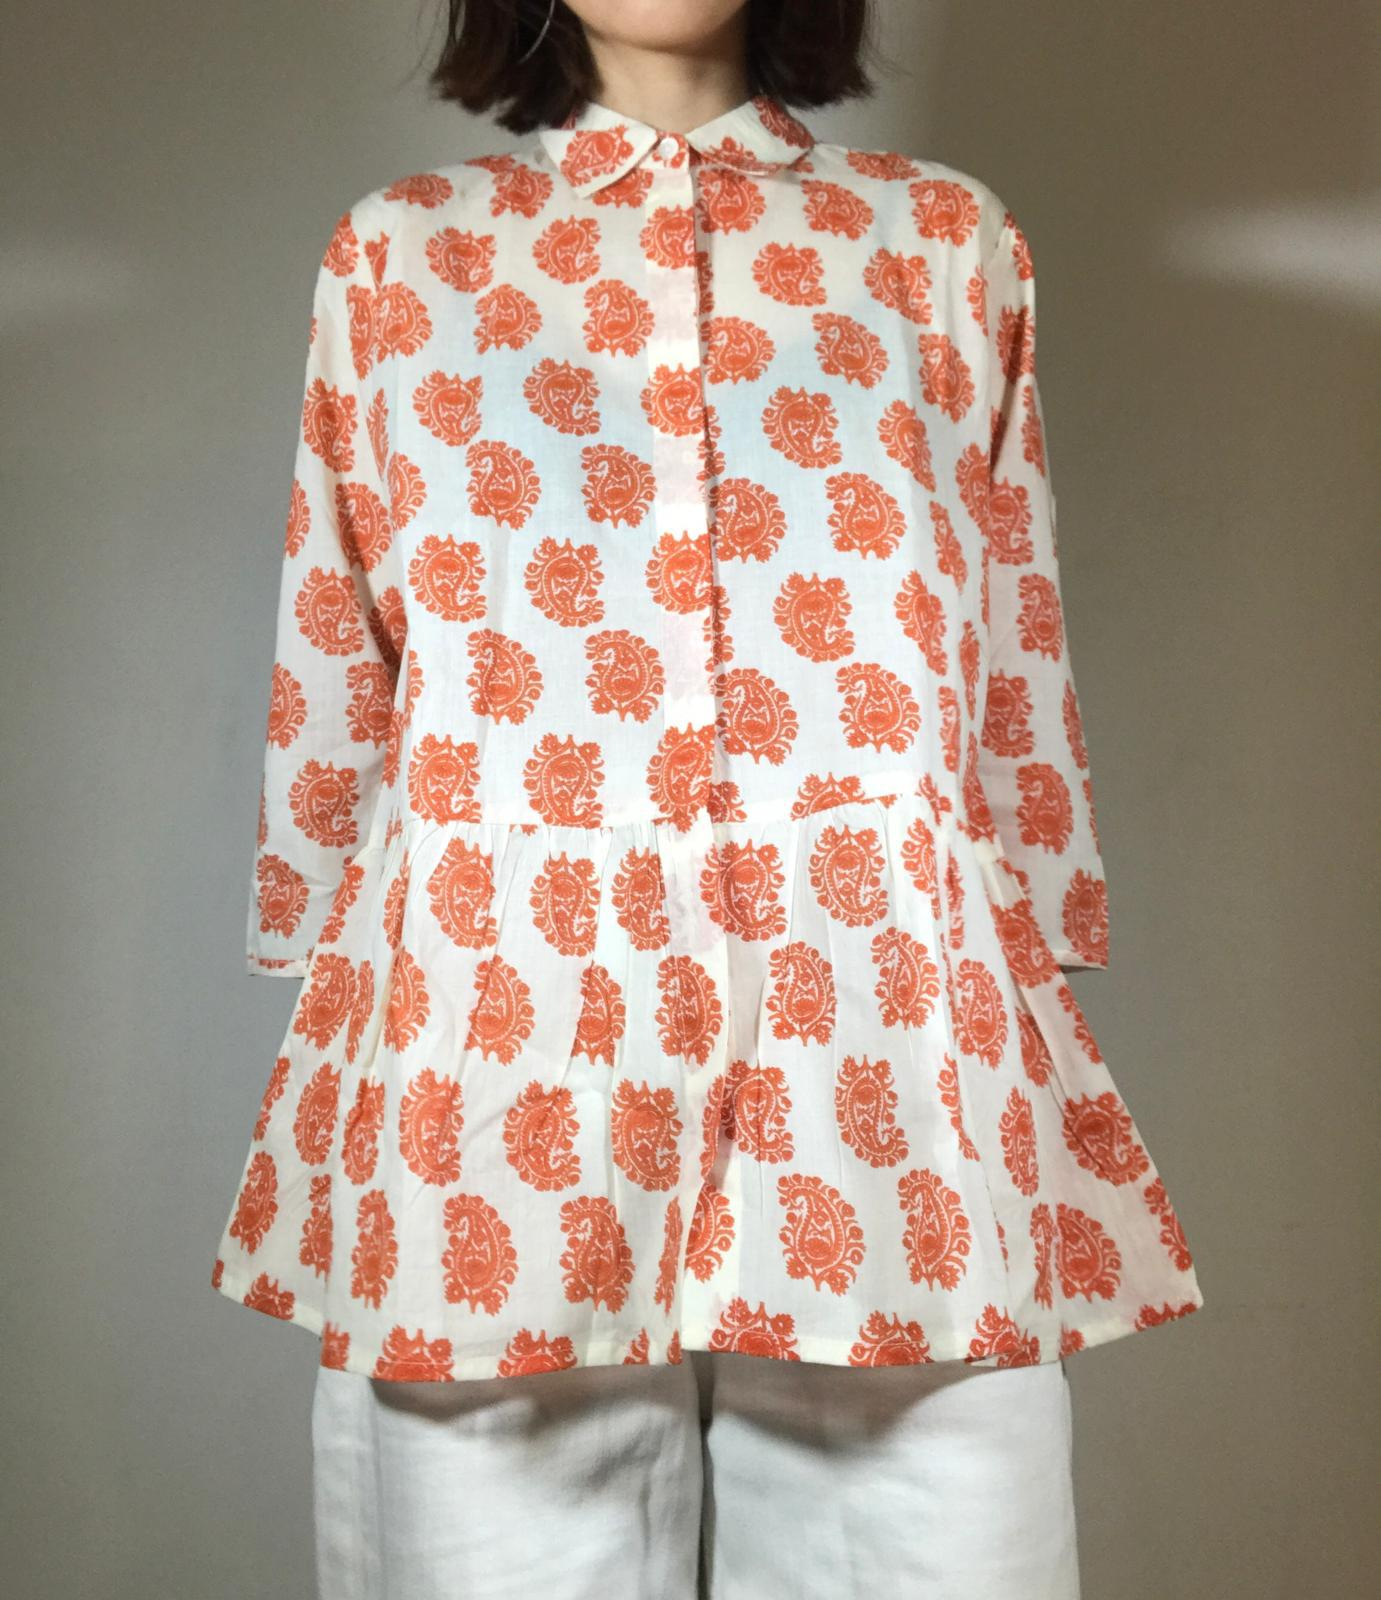 Orange jaipur paisley shirt